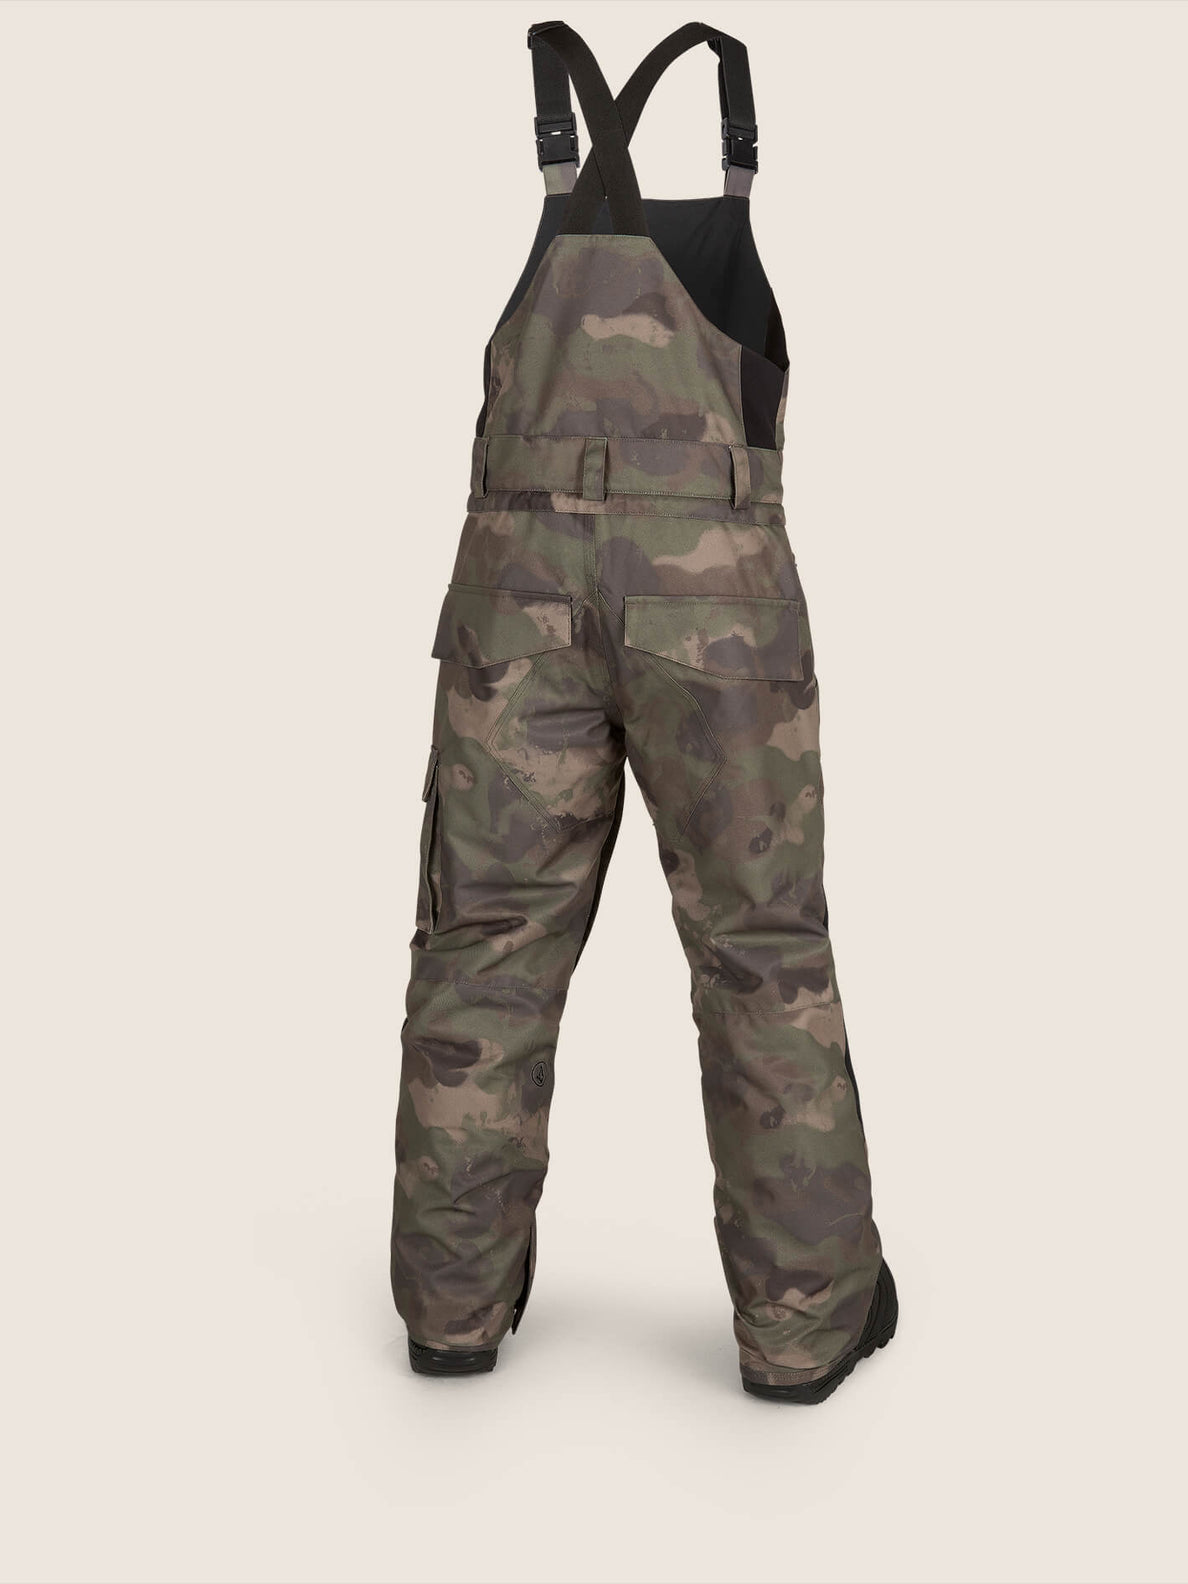 Barkley Bib Overall In Camouflage, Back View